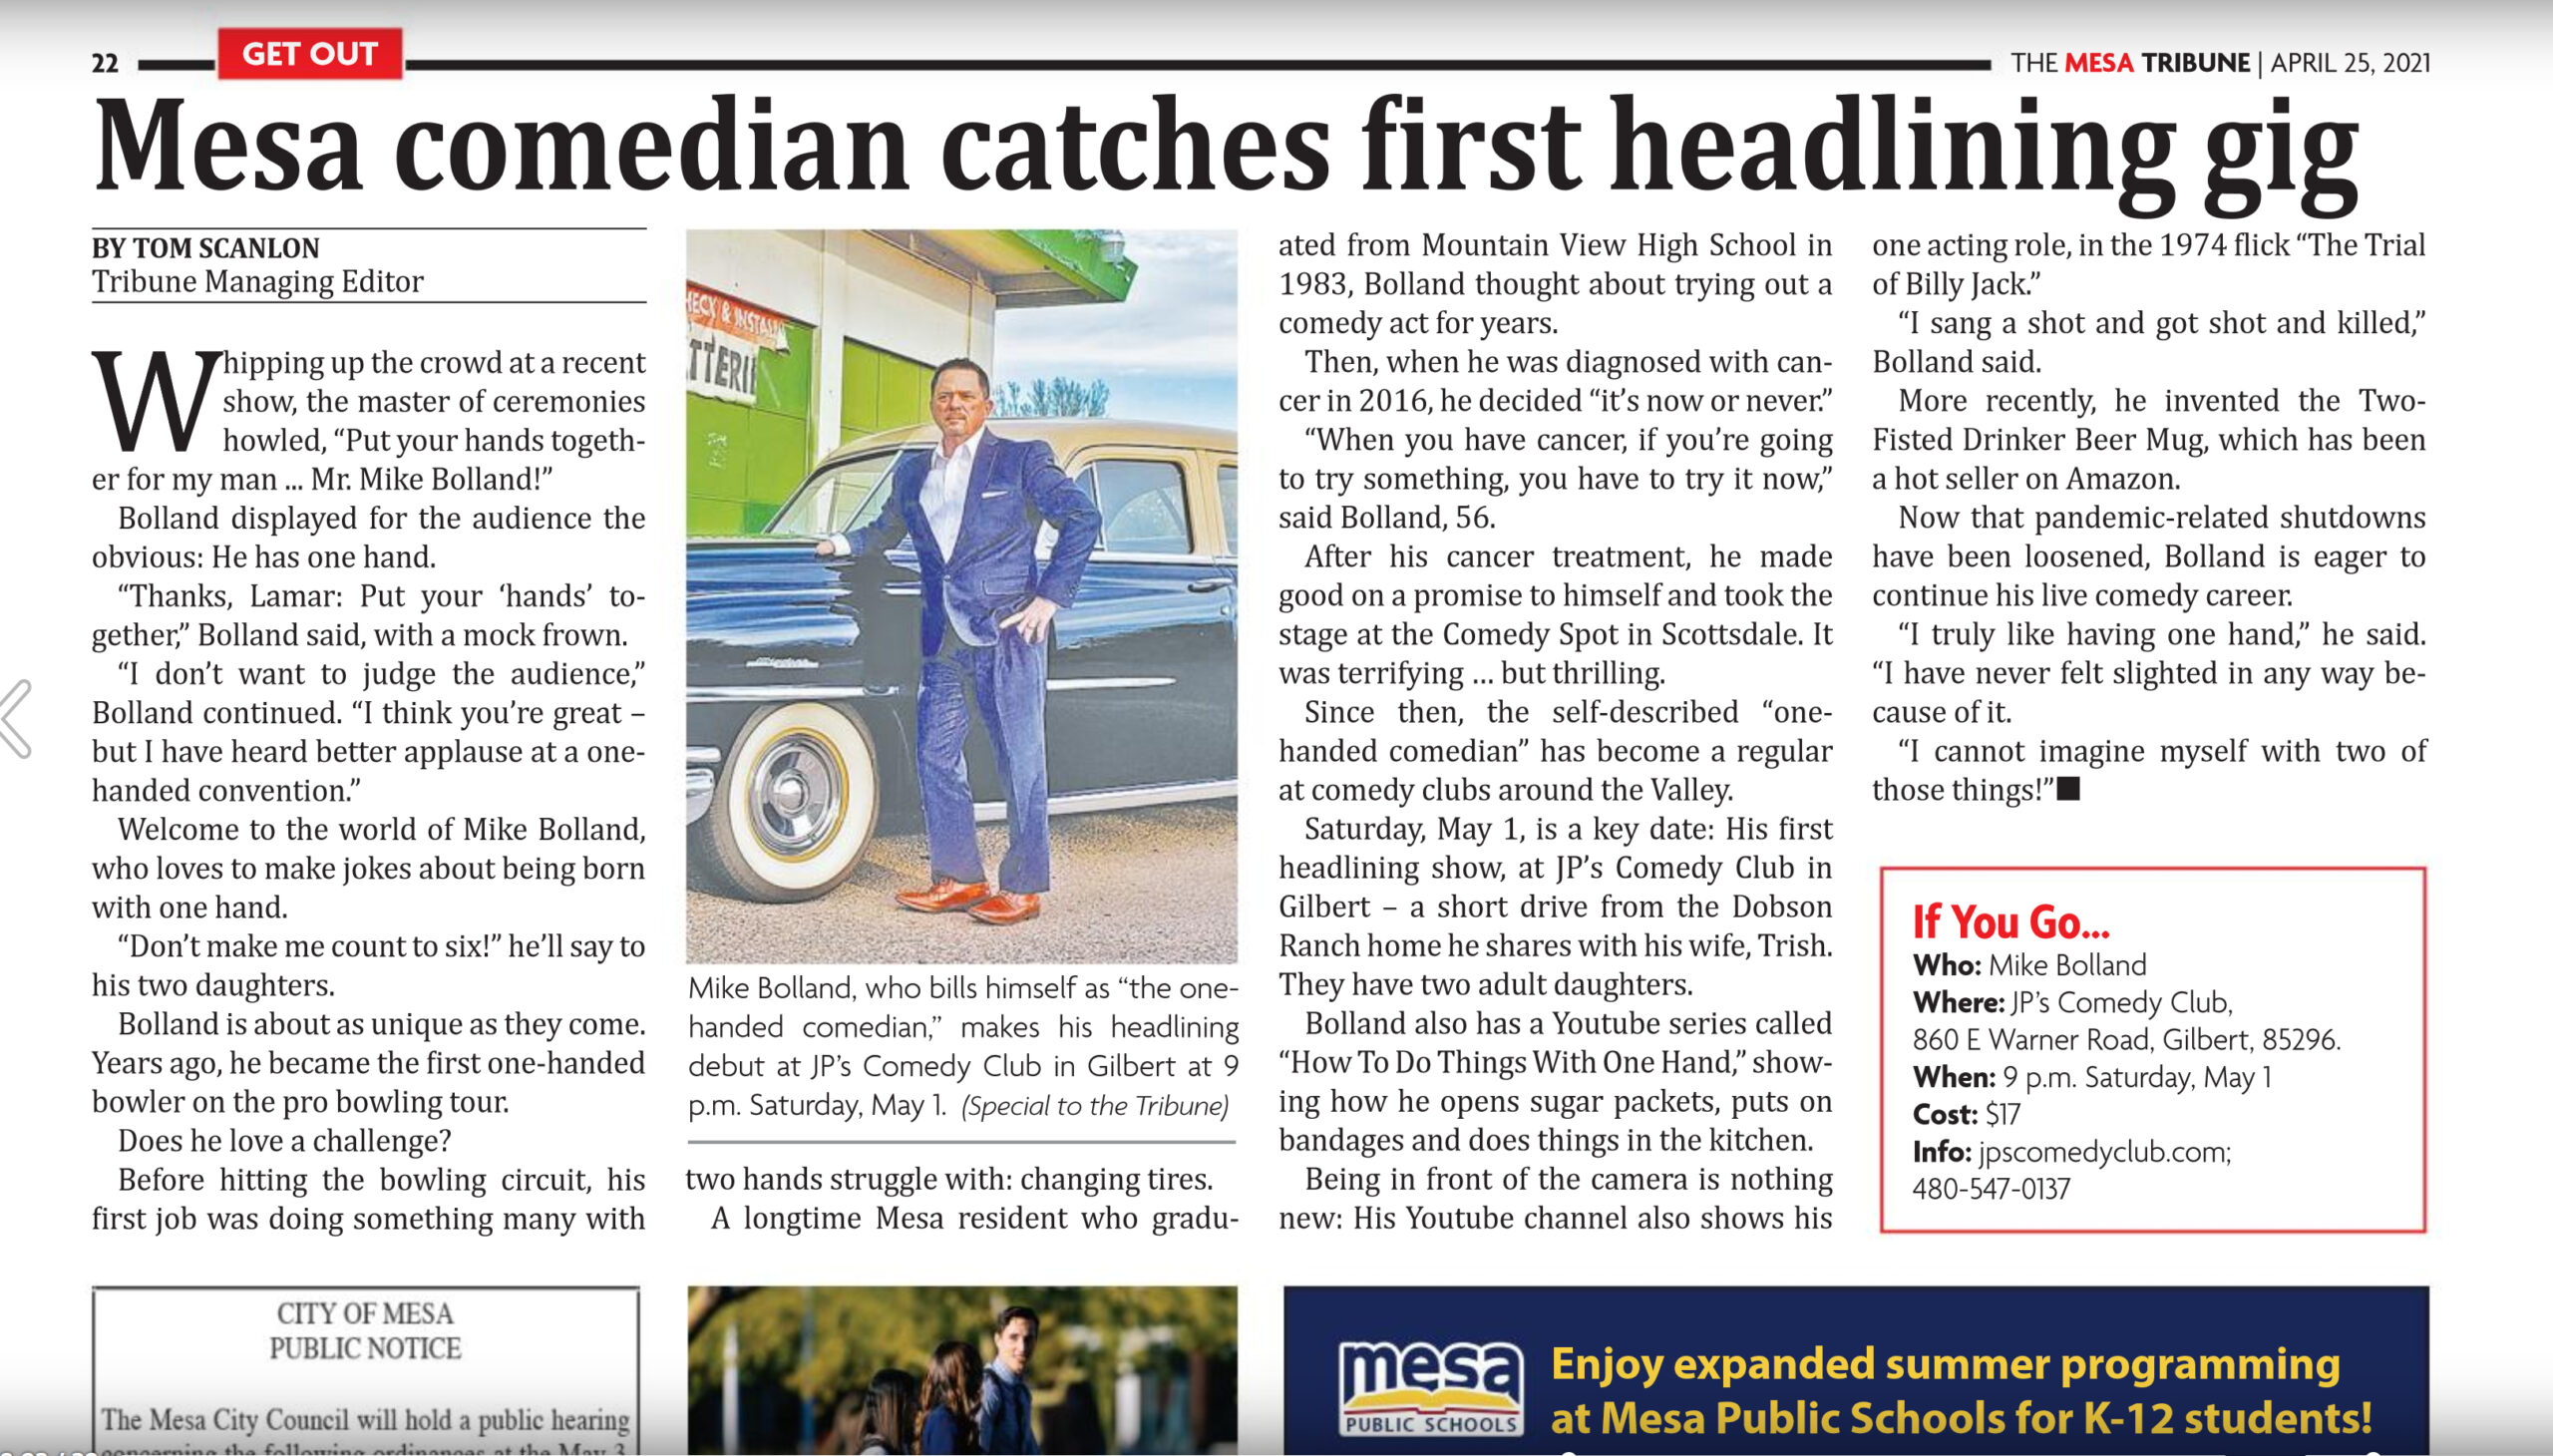 One handed comedian Mike Bolland feature in The Mesa Tribune.